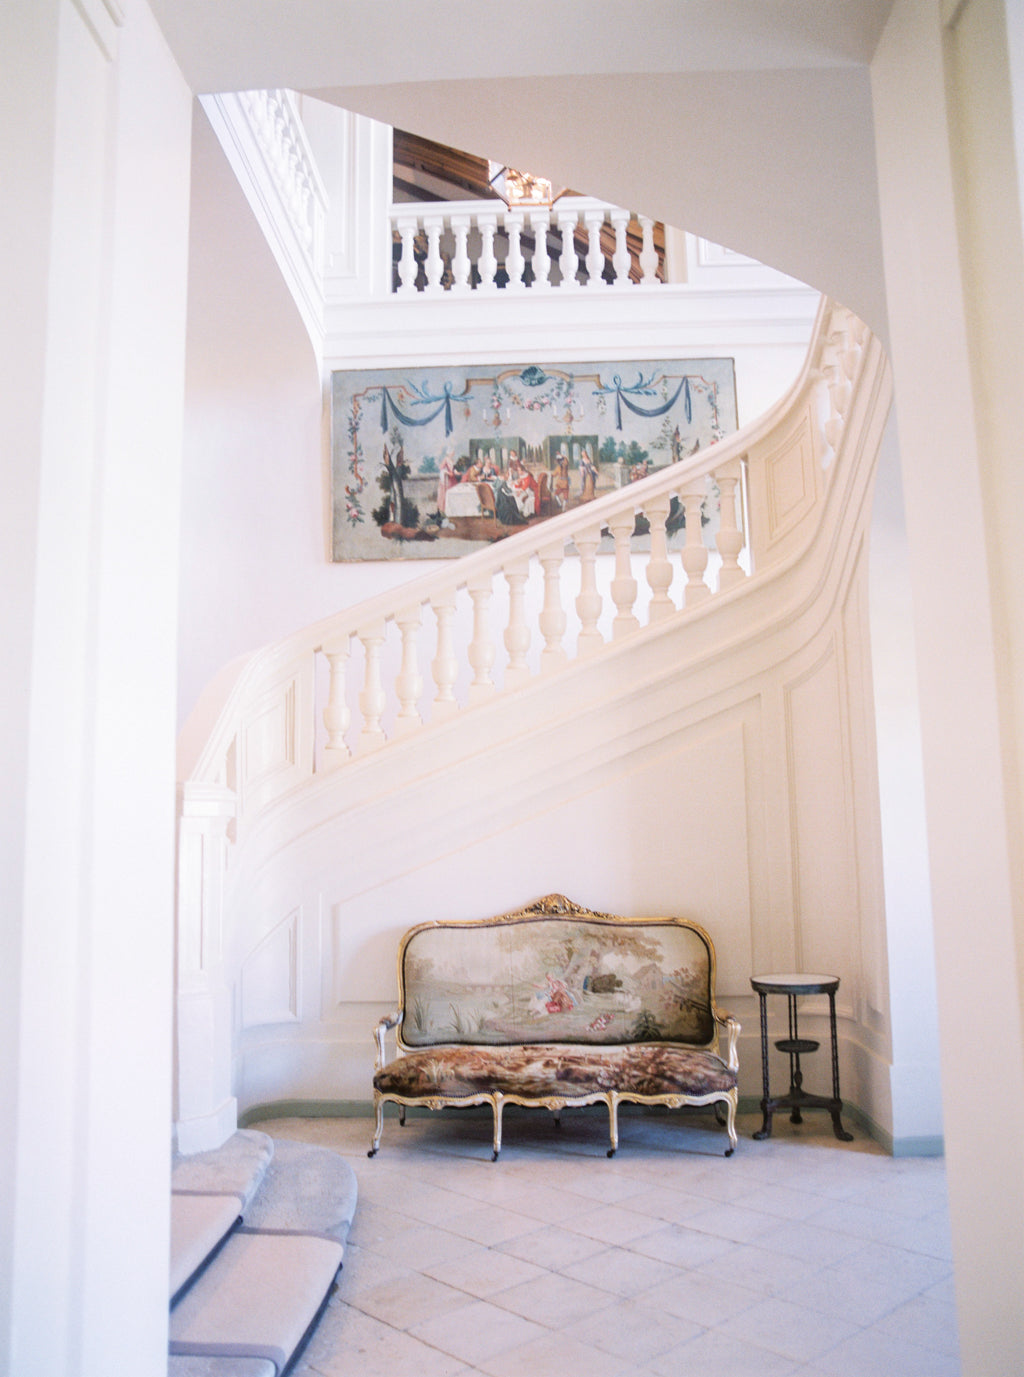 Chateau du Grand Luce photo by Audrey Neracoulis